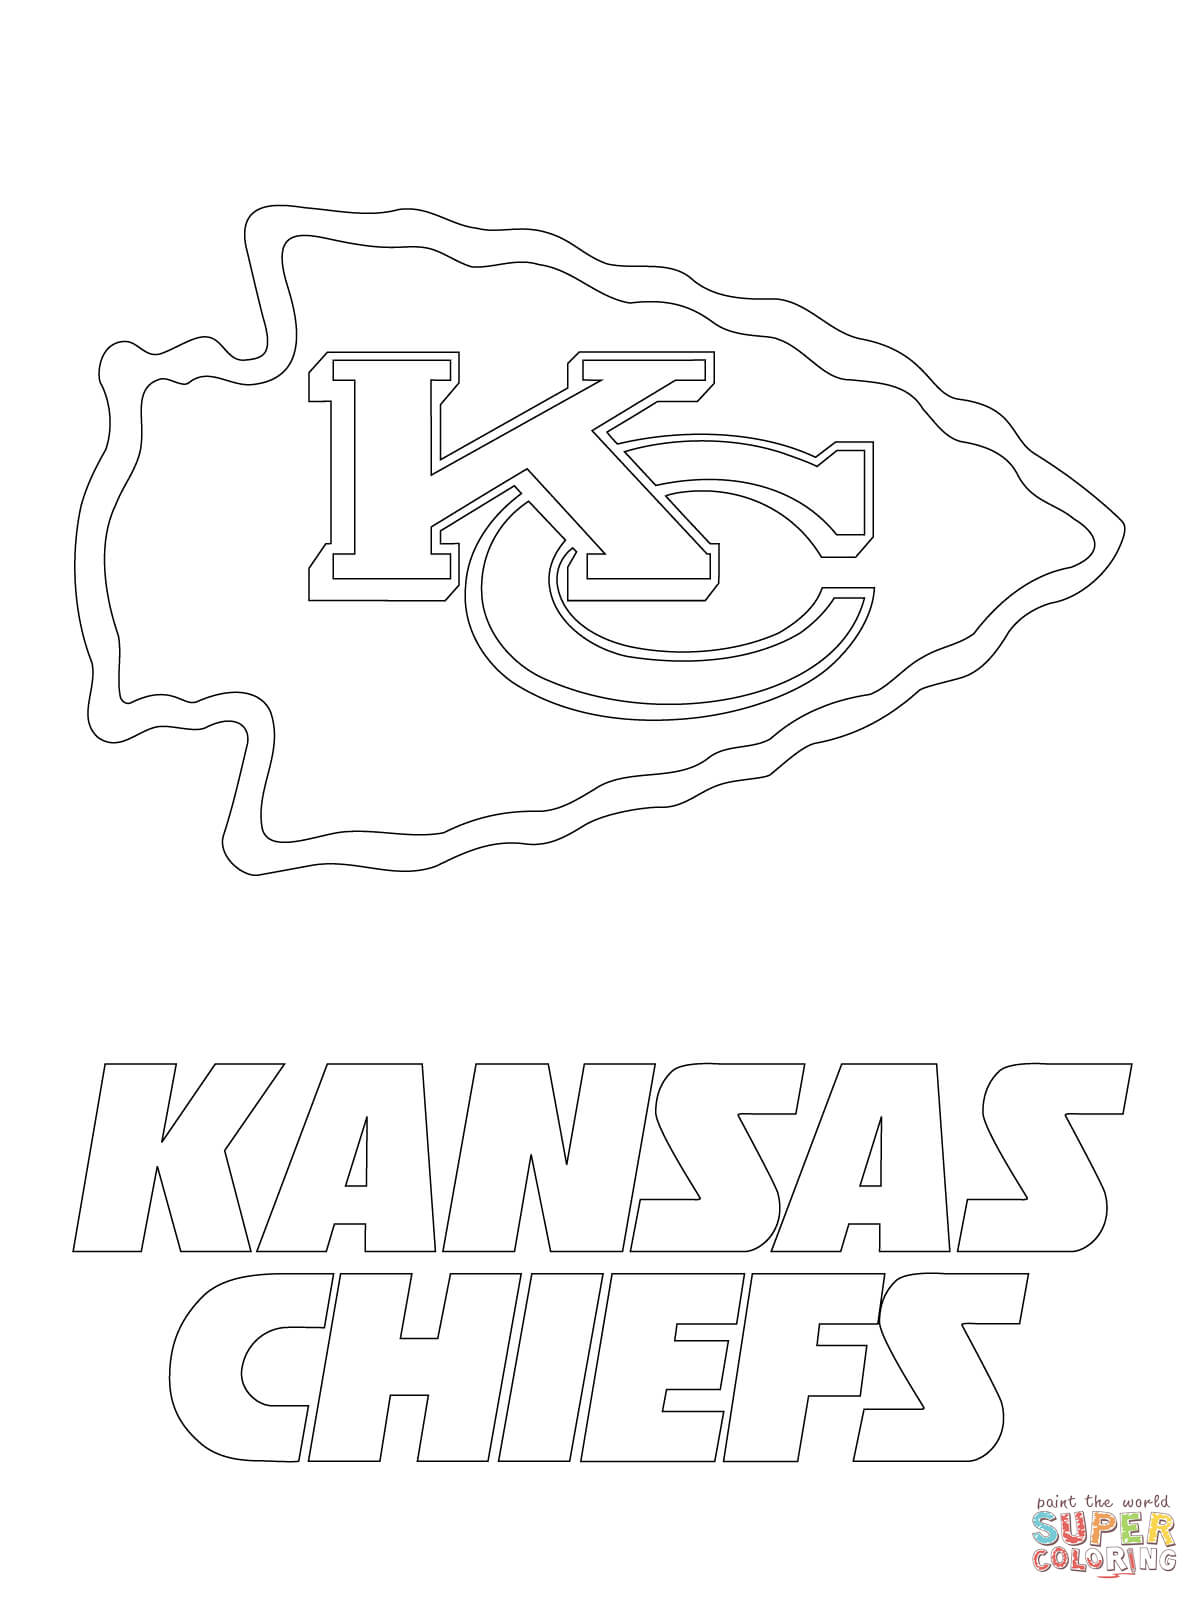 kansas city chiefs coloring pages kansas city chiefs coloring pages coloring home kansas chiefs city pages coloring